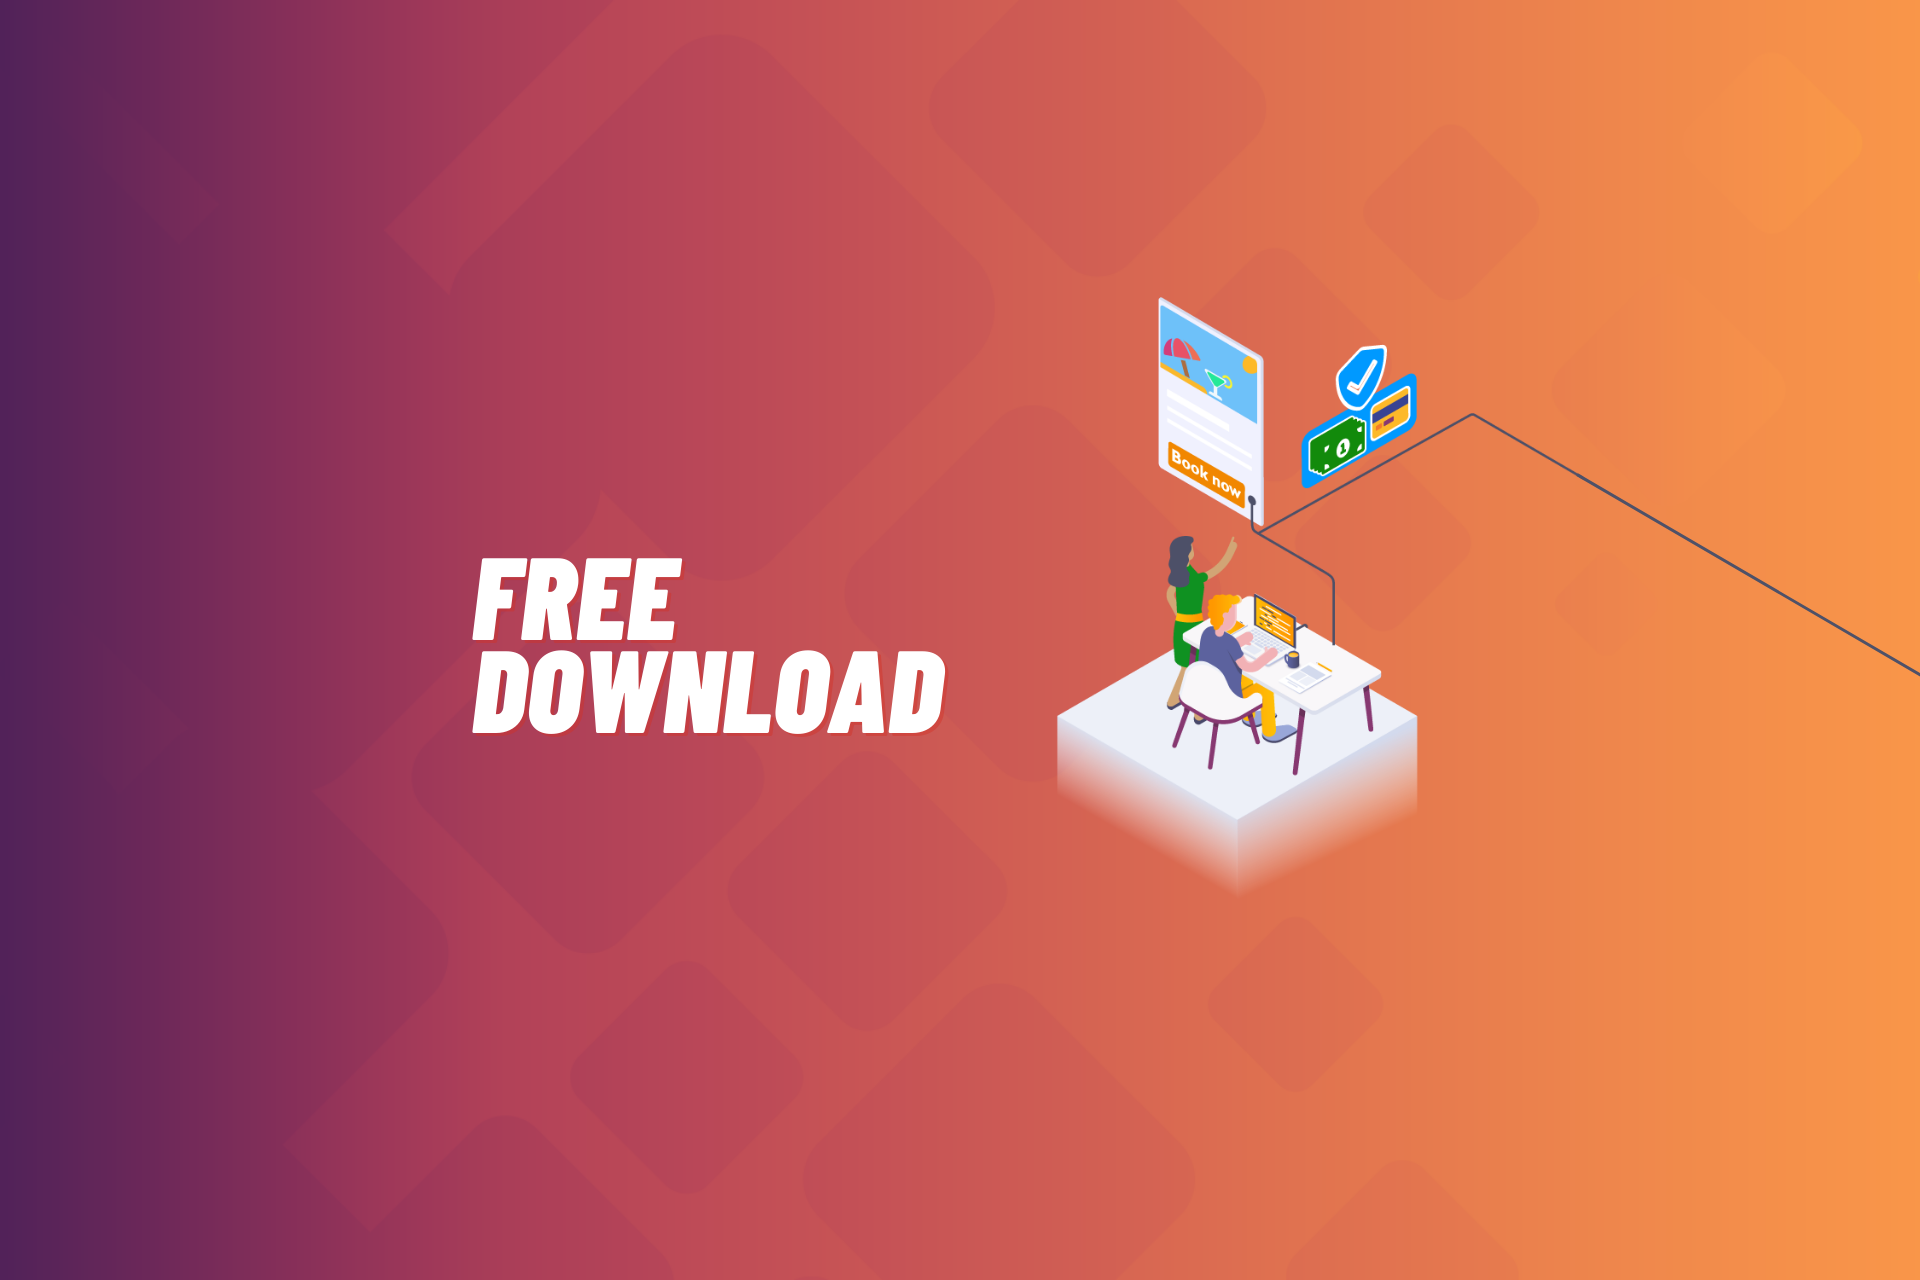 The basics of the payment industry [free download]